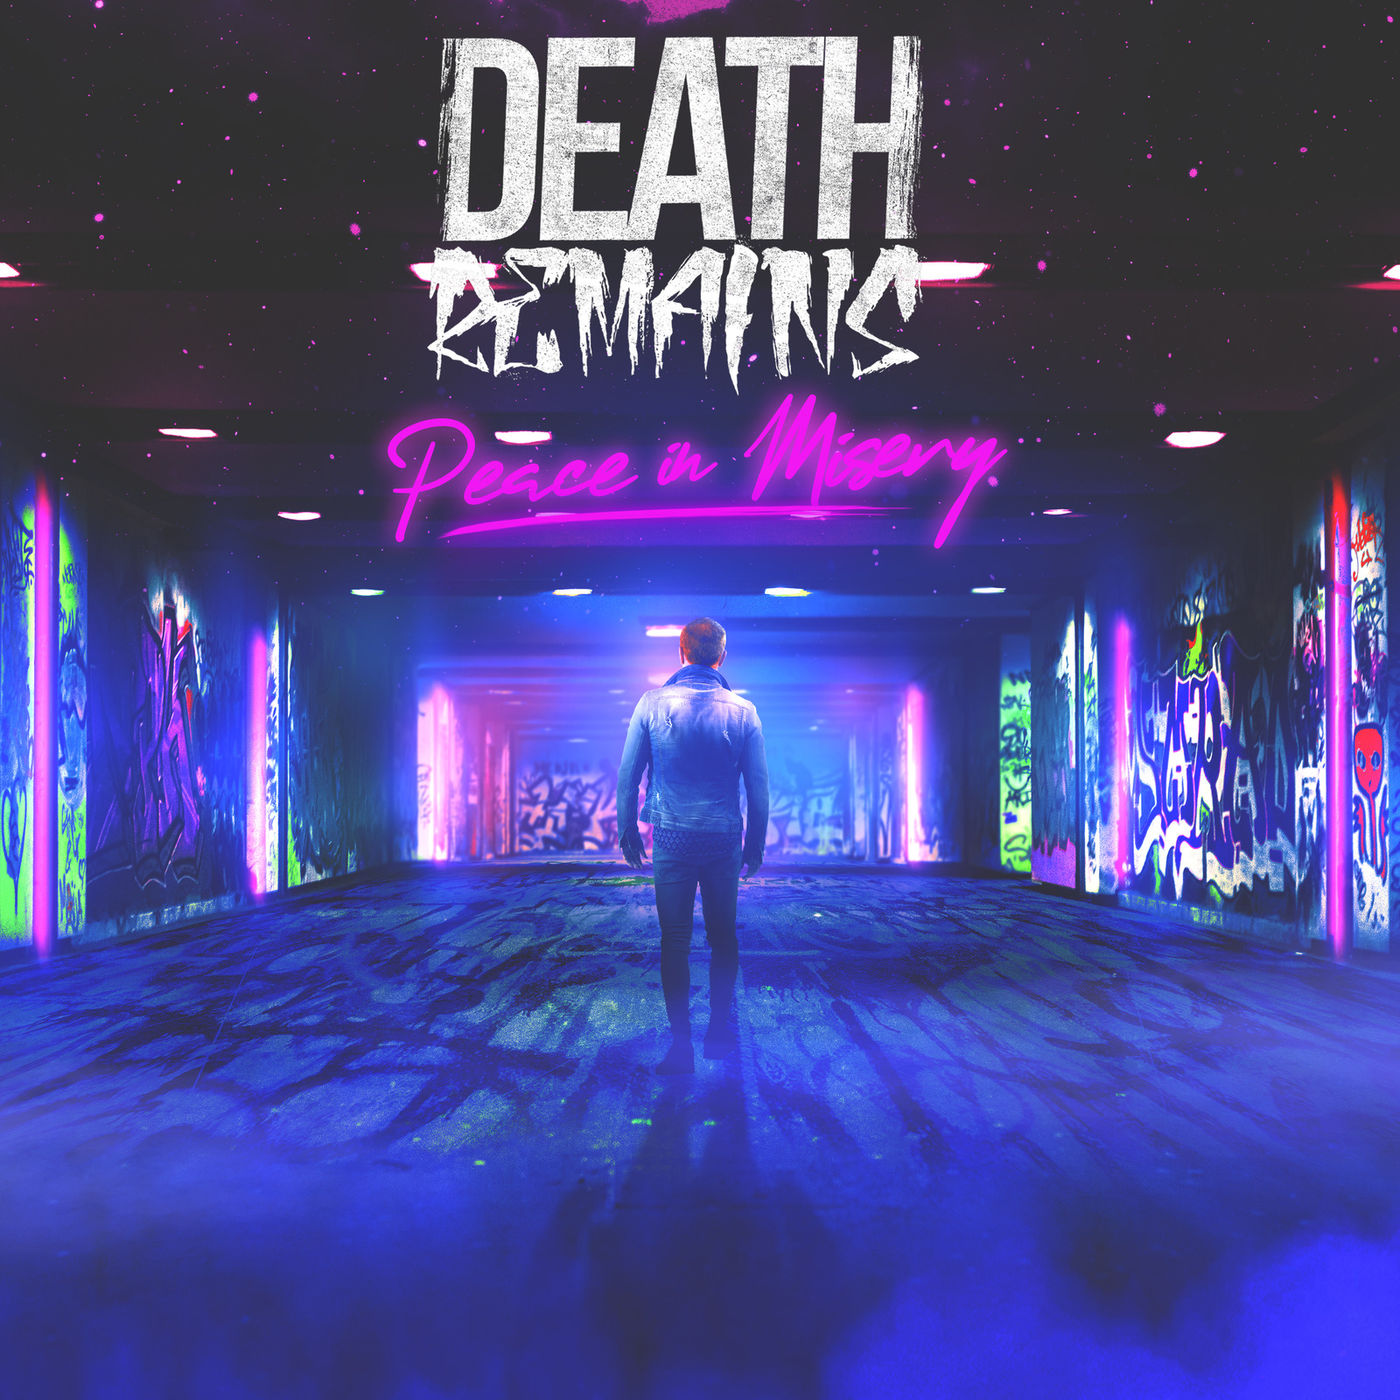 Death Remains - Peace in Misery [single] (2019)